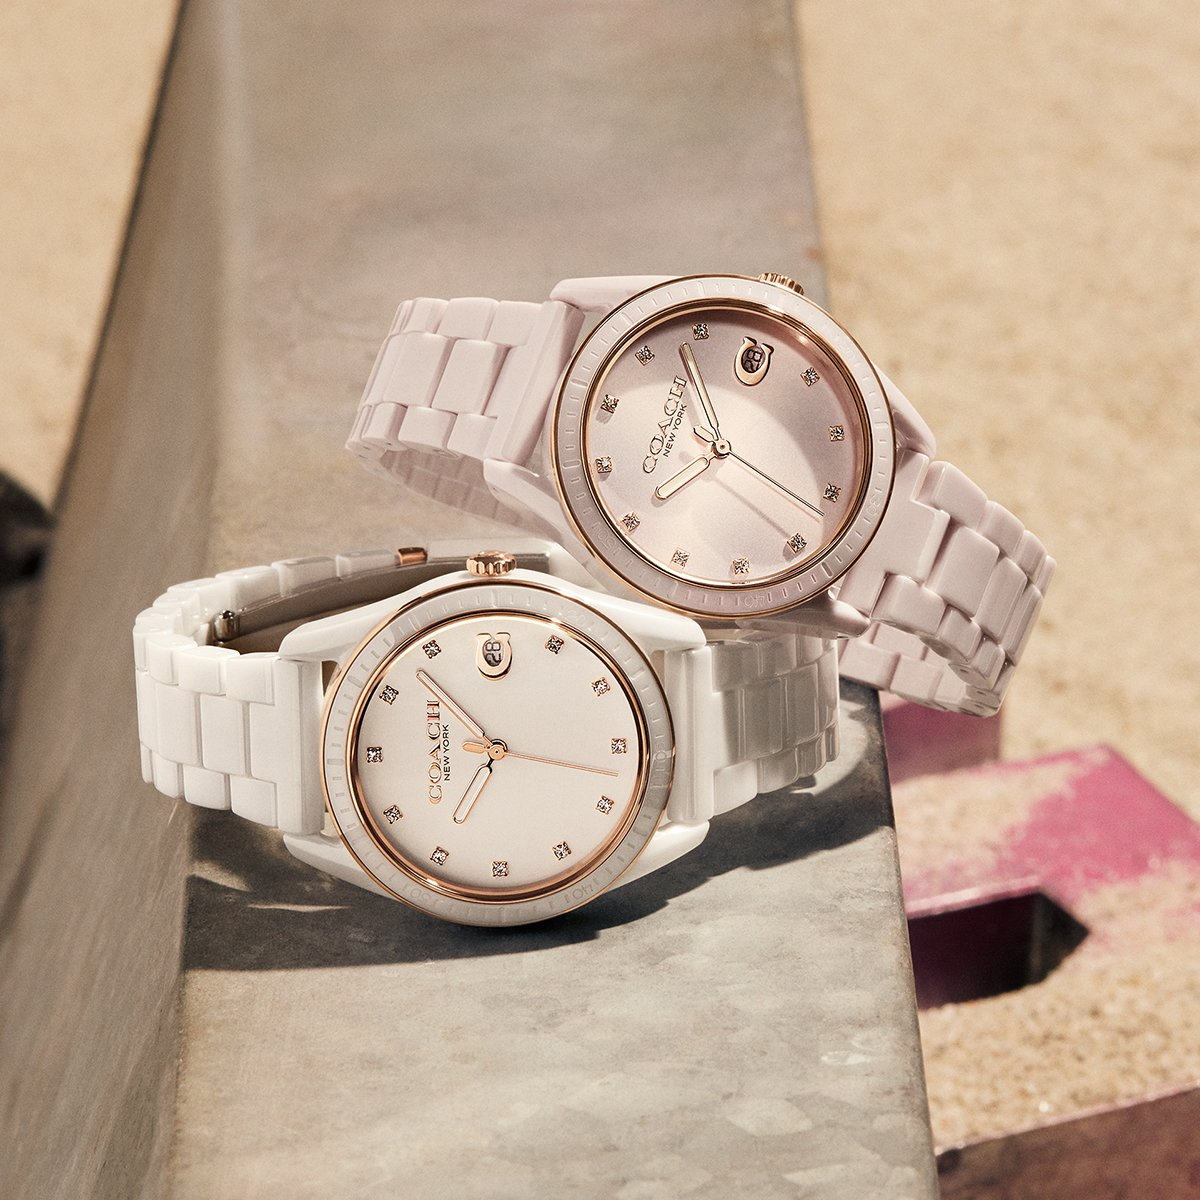 Celebrate #NationalWatchDay with a new piece from our collection.  http://on.coach.com/WomenWatches